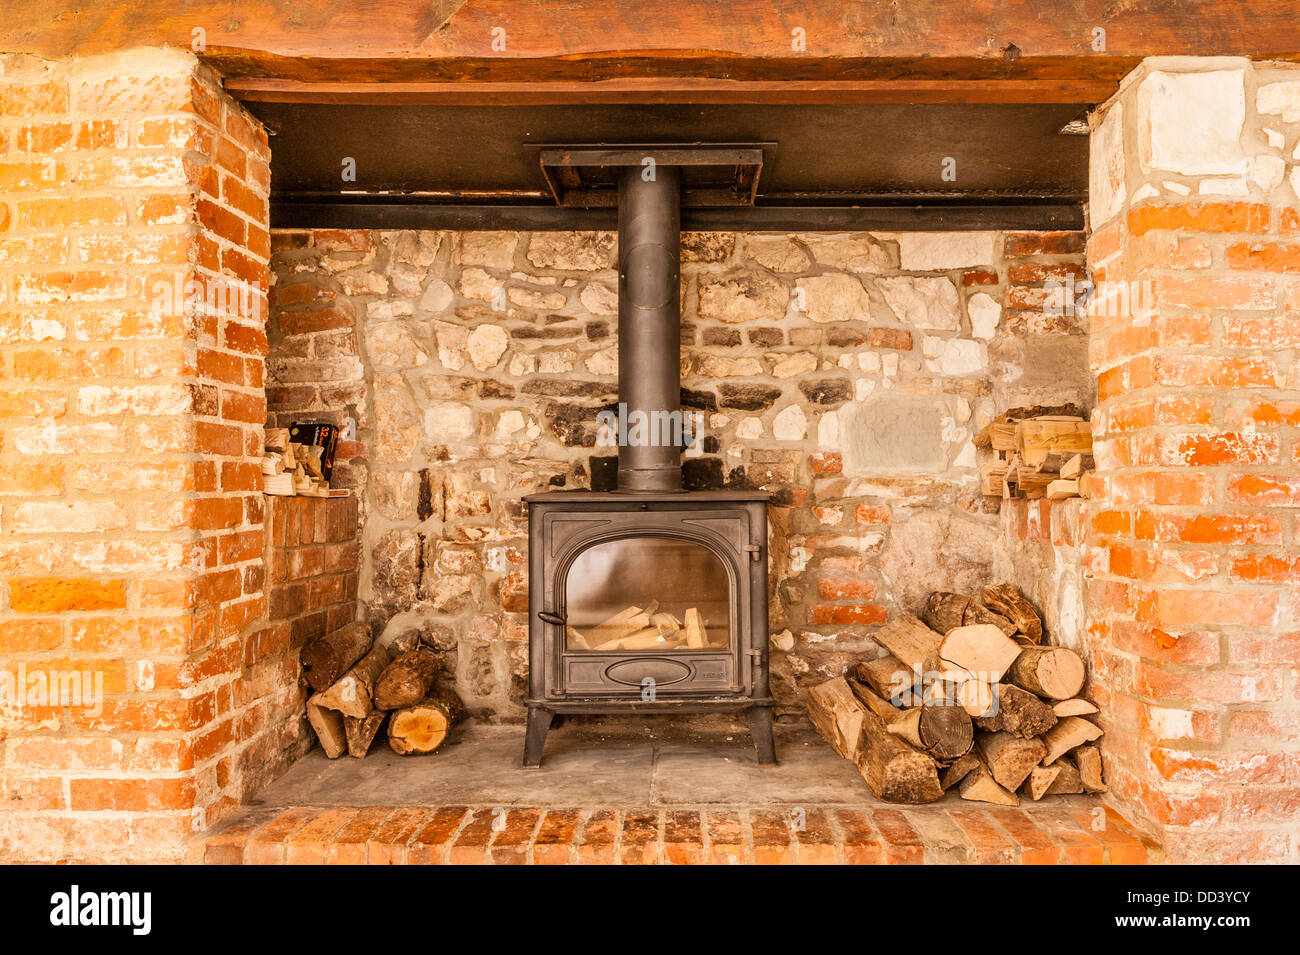 An Inglenook Fireplace With A Woodburner Stock Photo